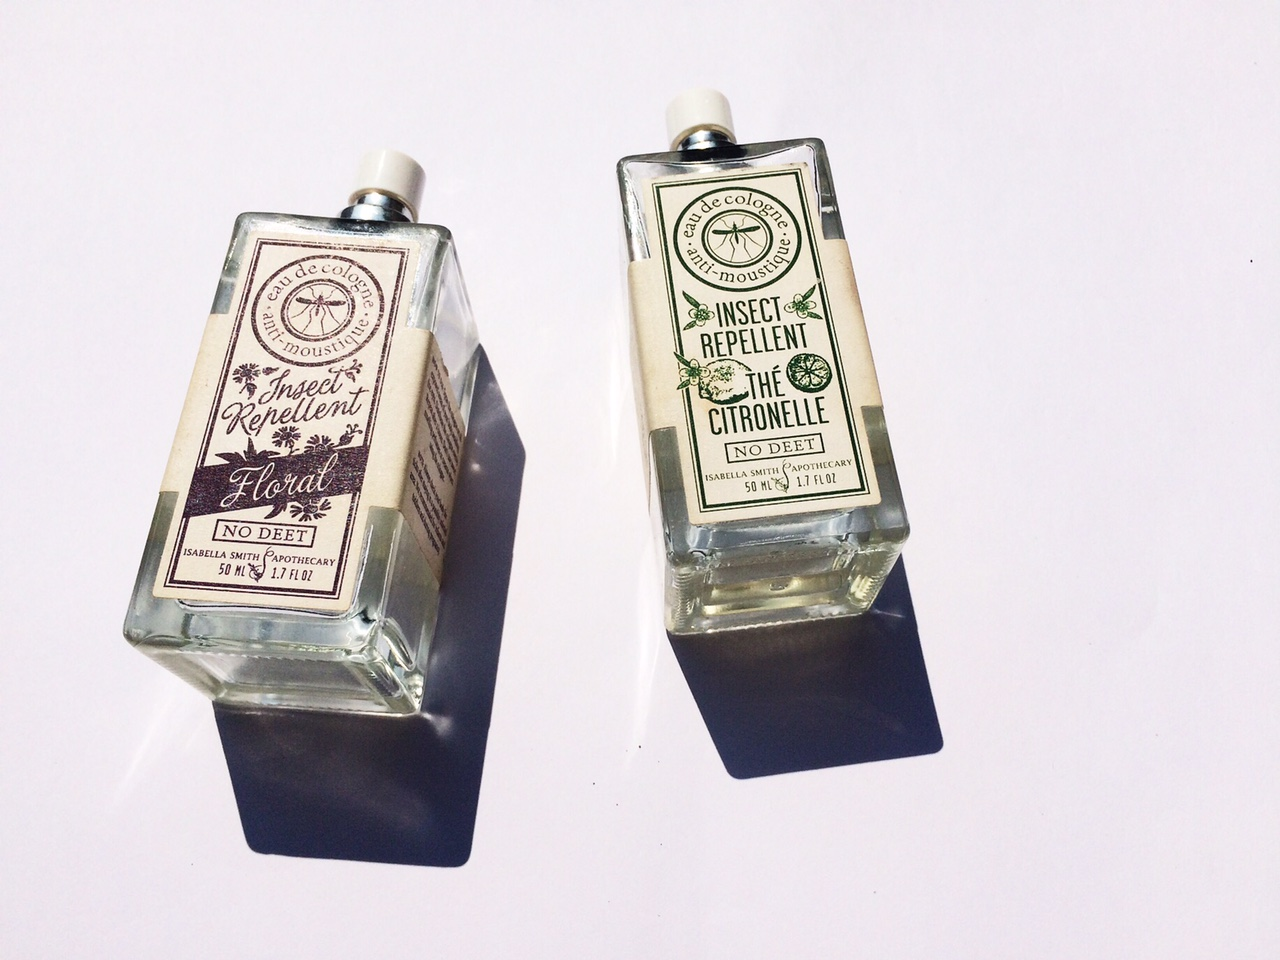 Introducing Isabella Smith Insect Repellent PErfume